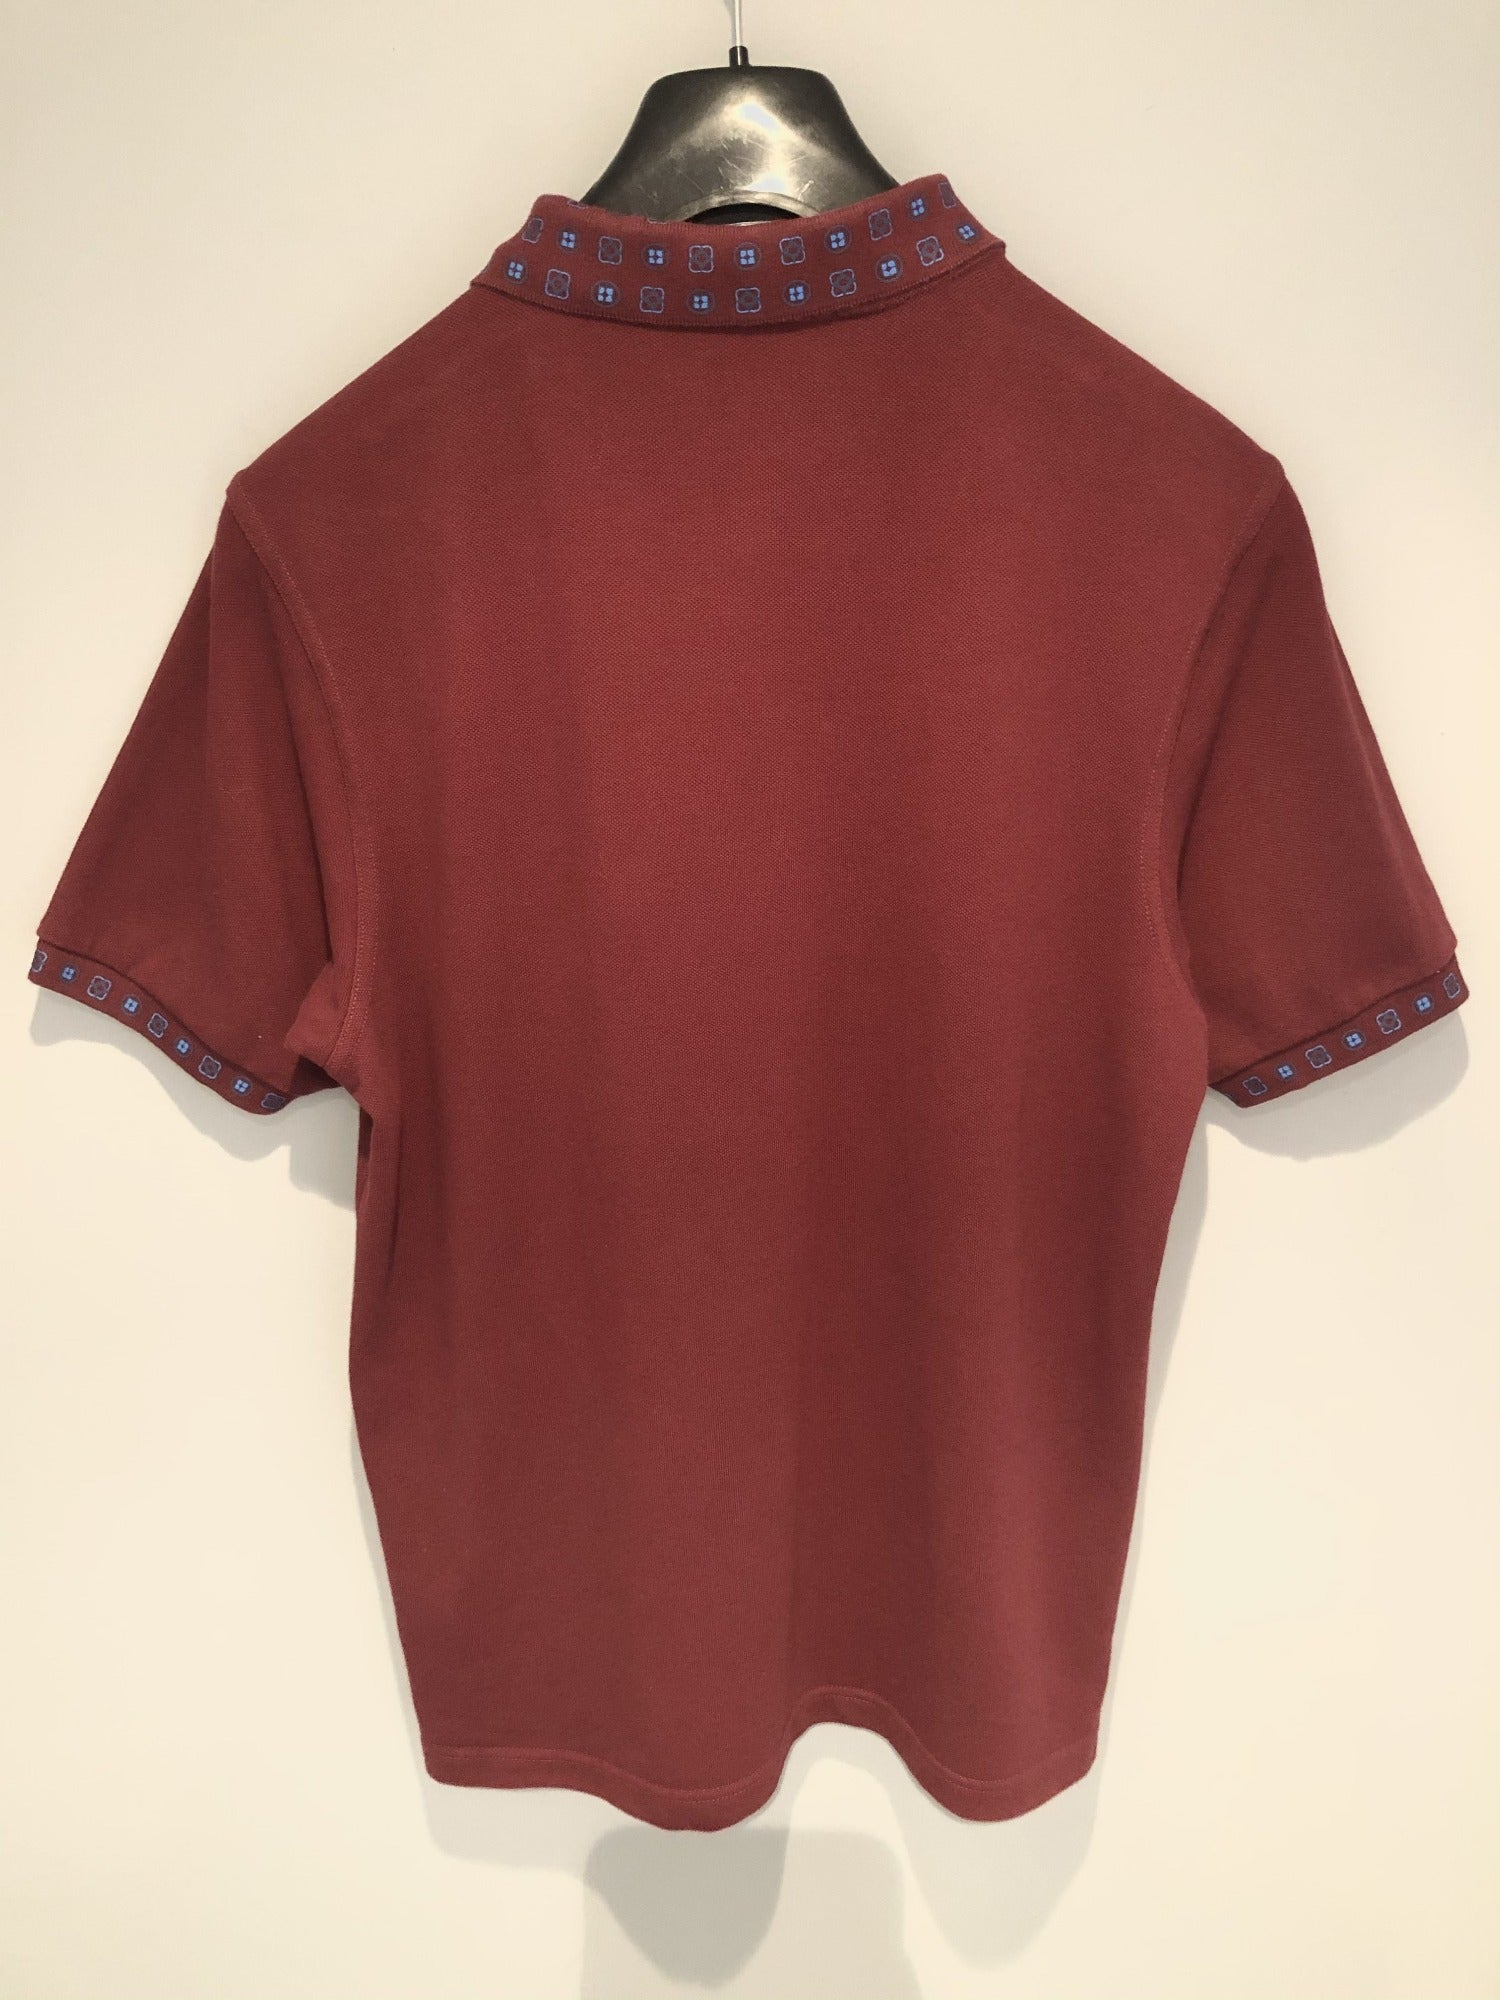 Claret and Blue Patterned Fred Perry Slim Fit Polo Top - Size M - MOD Clothing Urban Village Vintage